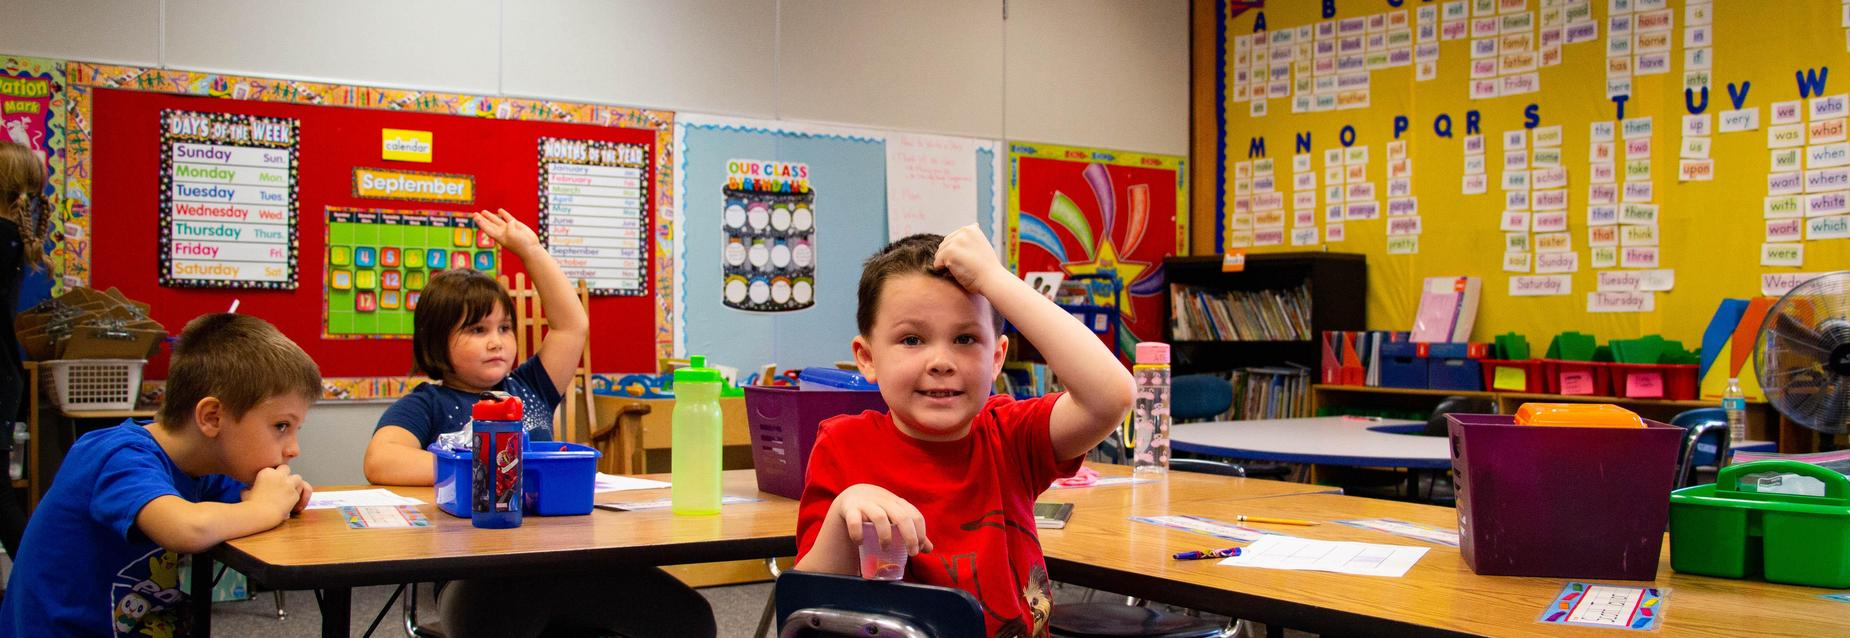 1st grade student in classroom